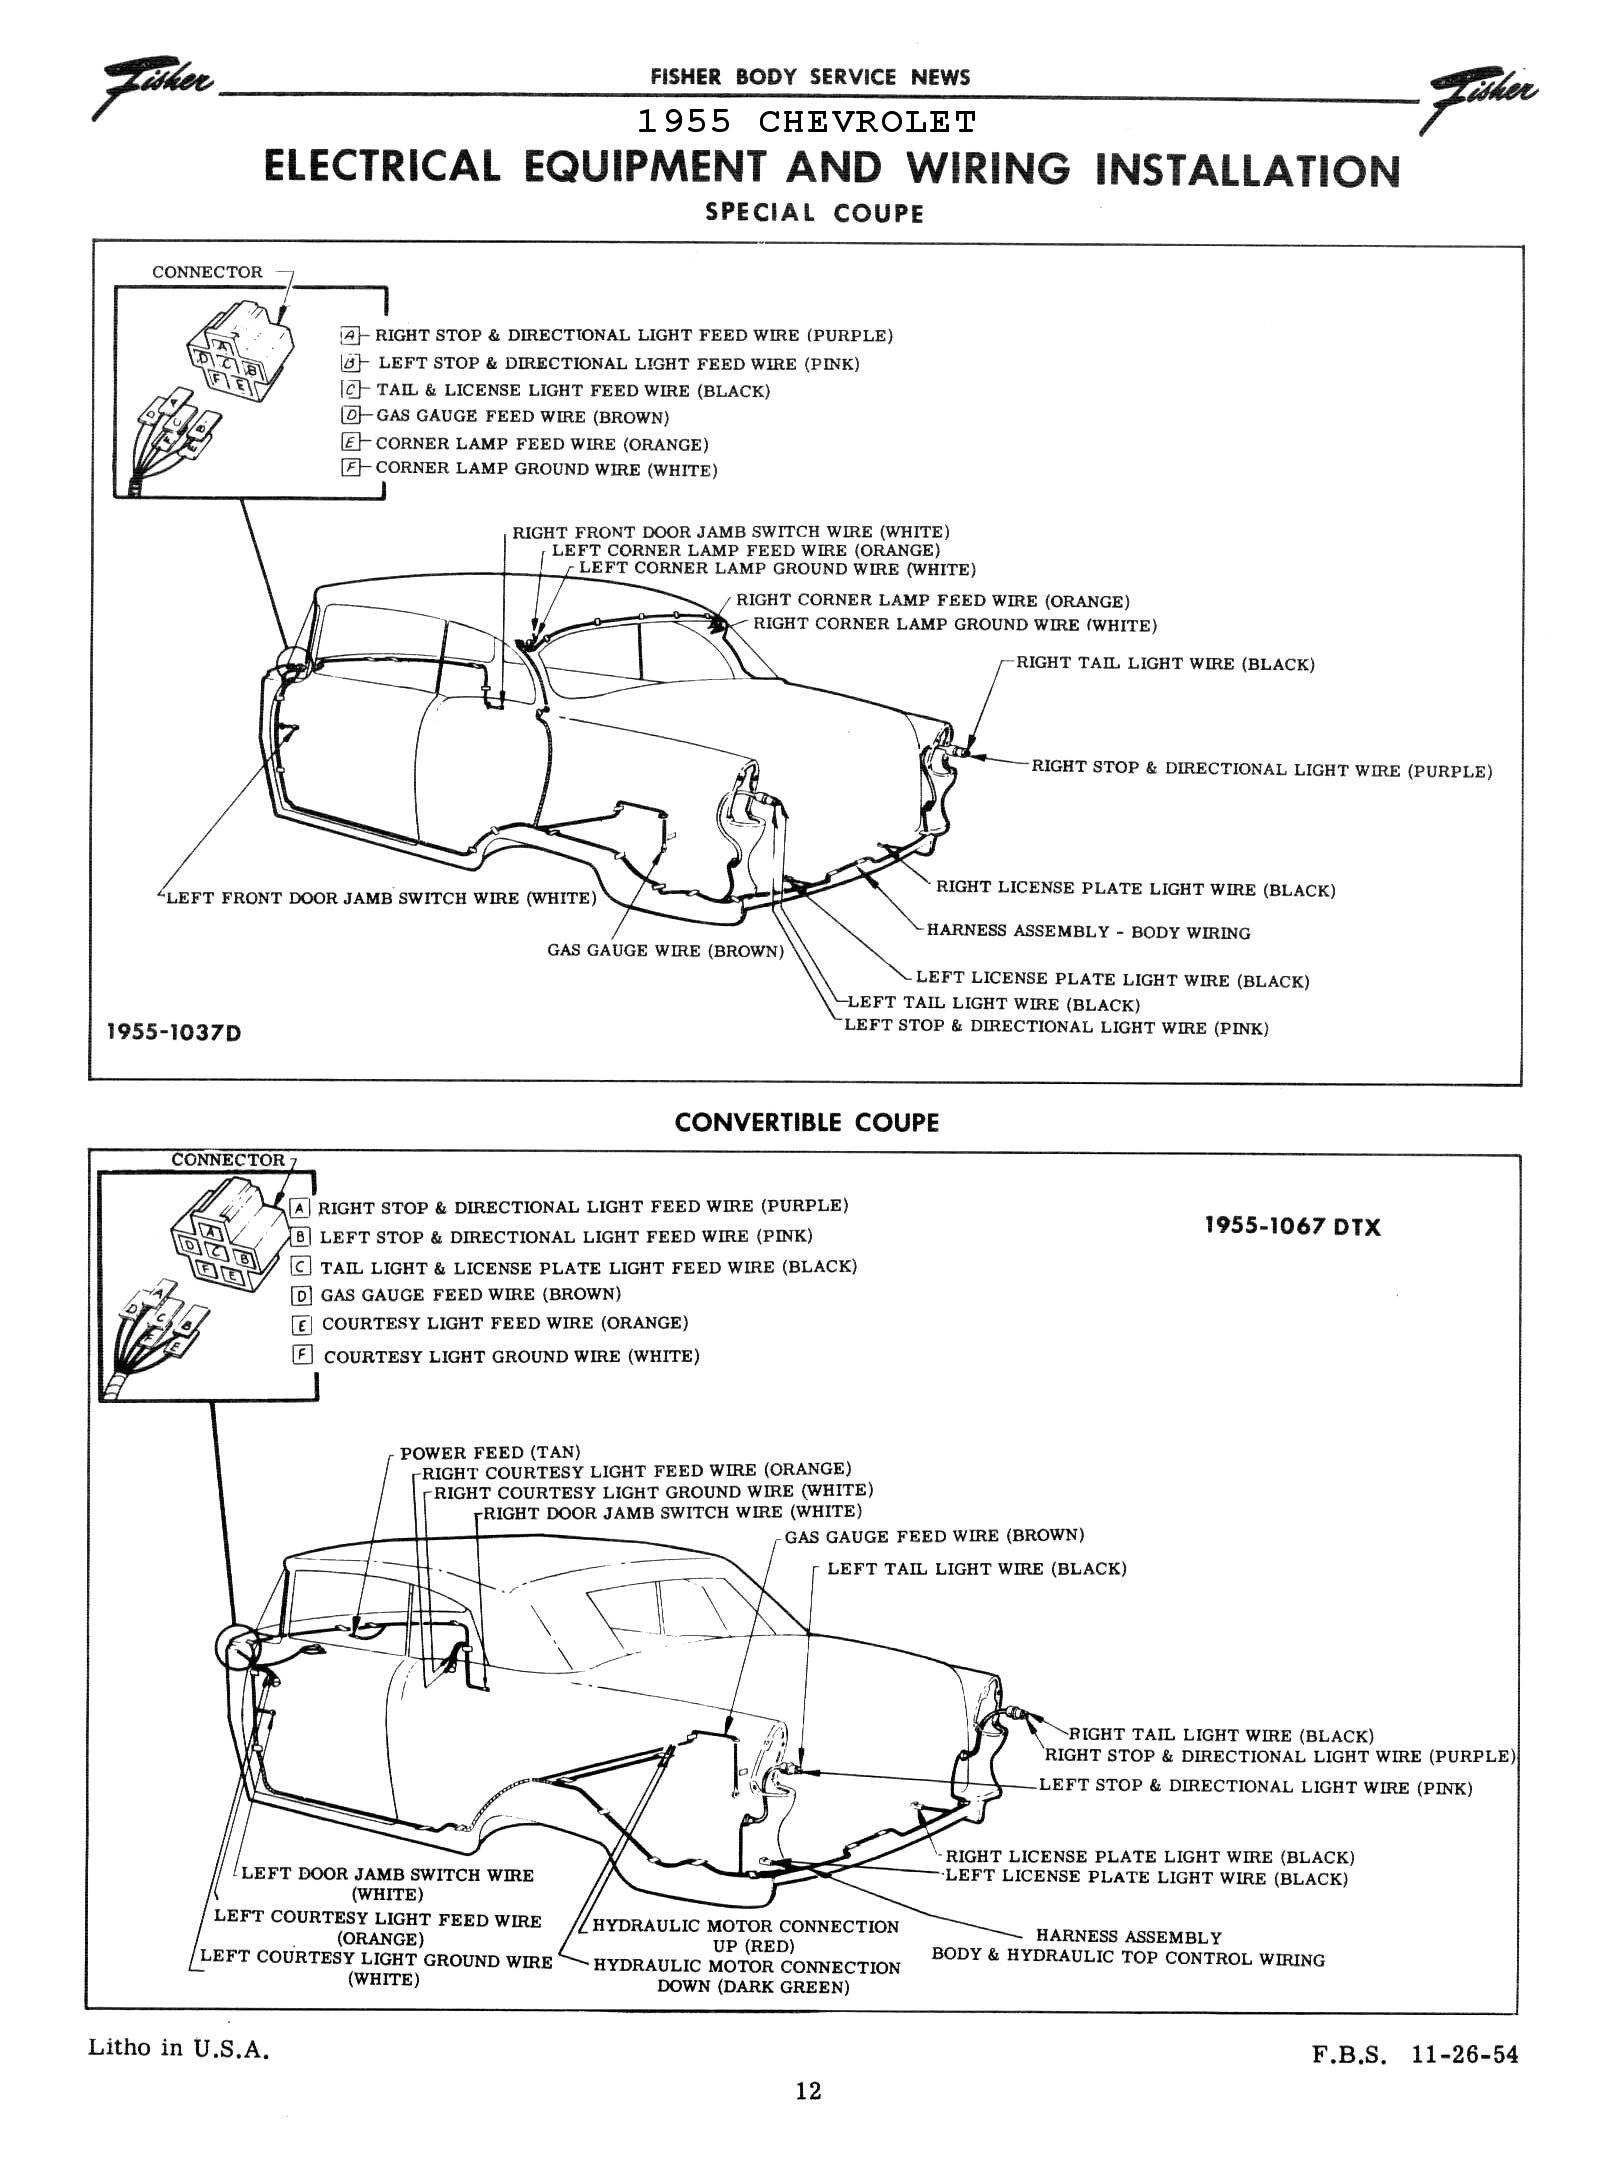 55fsn140612 chevy wiring diagrams 1963 C10 Wiring Diagram at arjmand.co